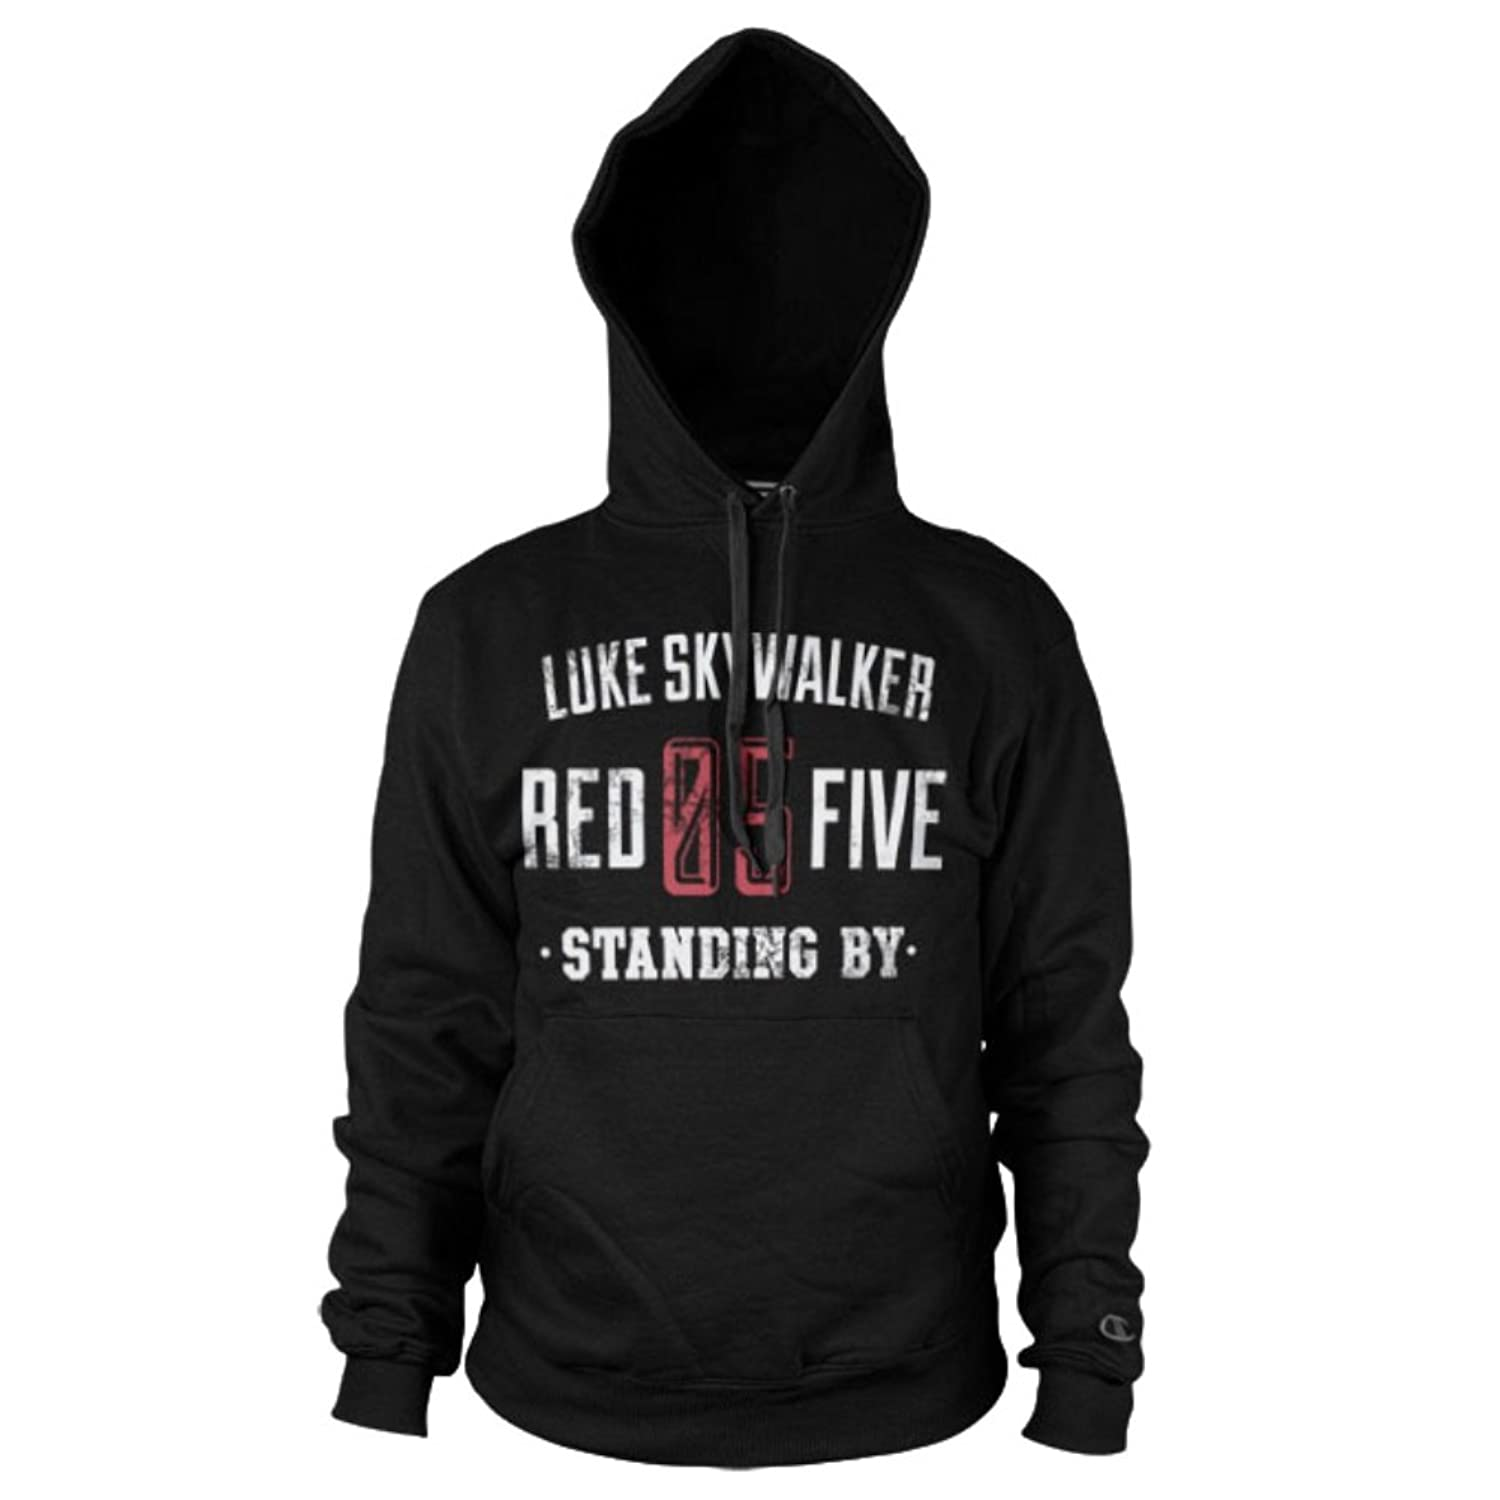 Official Luke Skywalker Red 5 Standing By Black Hoodie Hooded Sweater for cheap